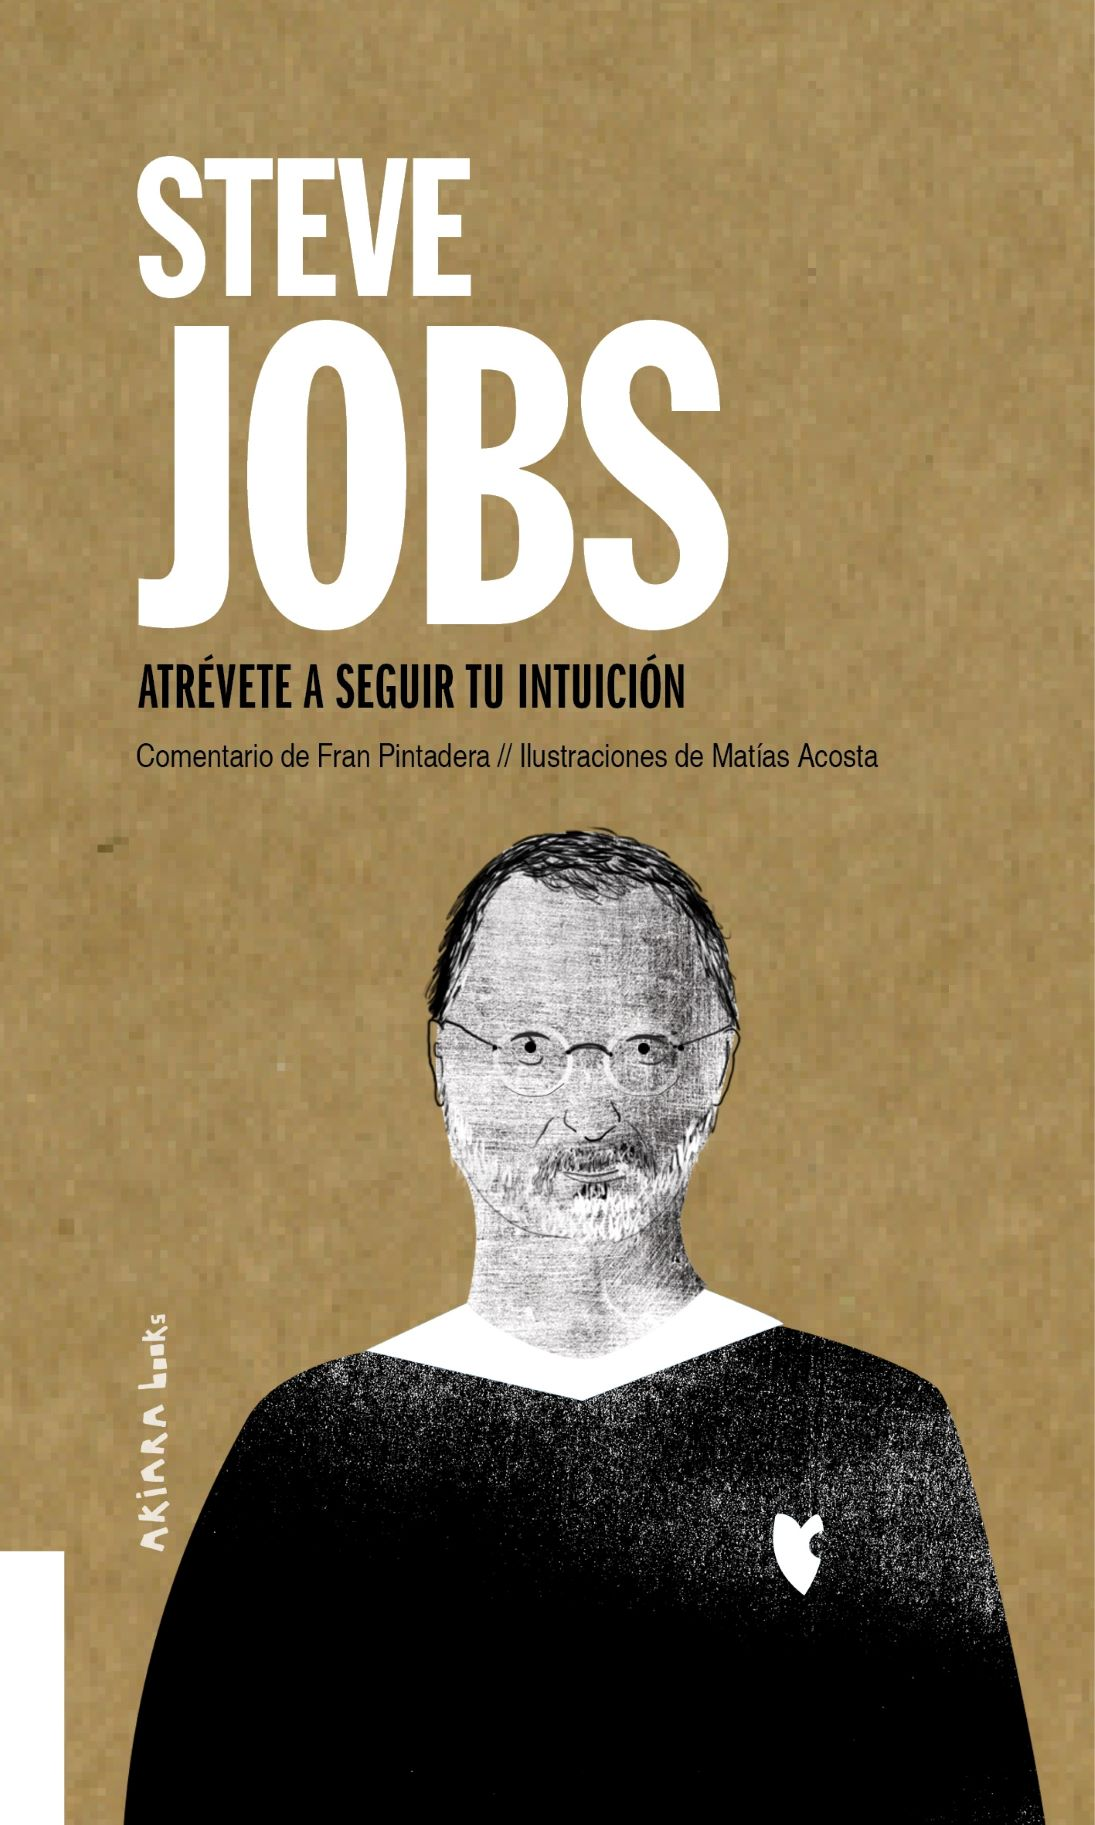 Steve Jobs akiparla final cover sept. 2020